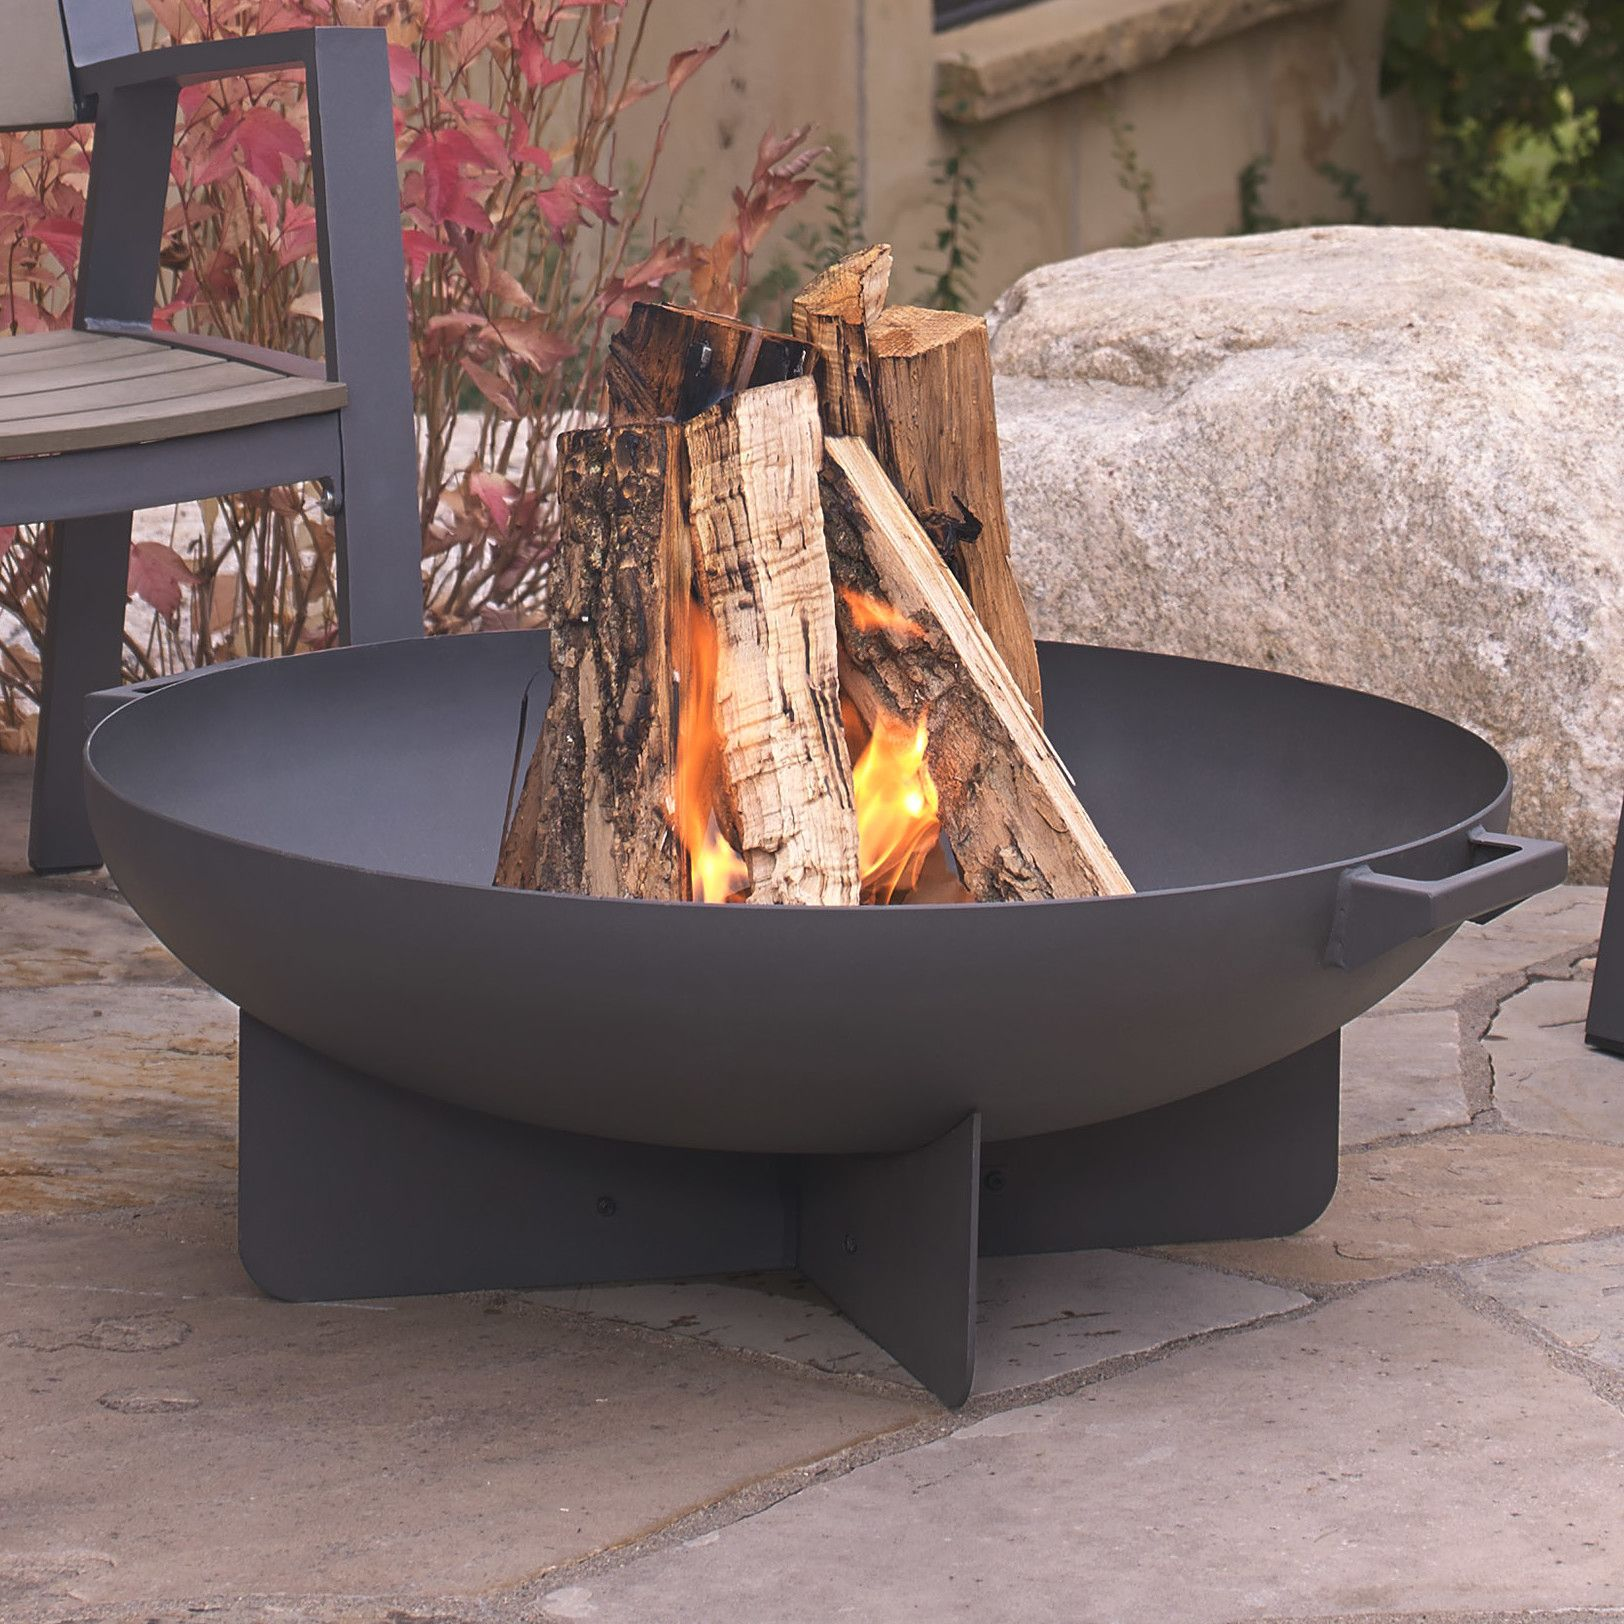 5cc17ec0fa67fc06edf00a4b8f8a389e Top Result 50 Awesome Steel Outdoor Fireplace Gallery 2018 Hiw6